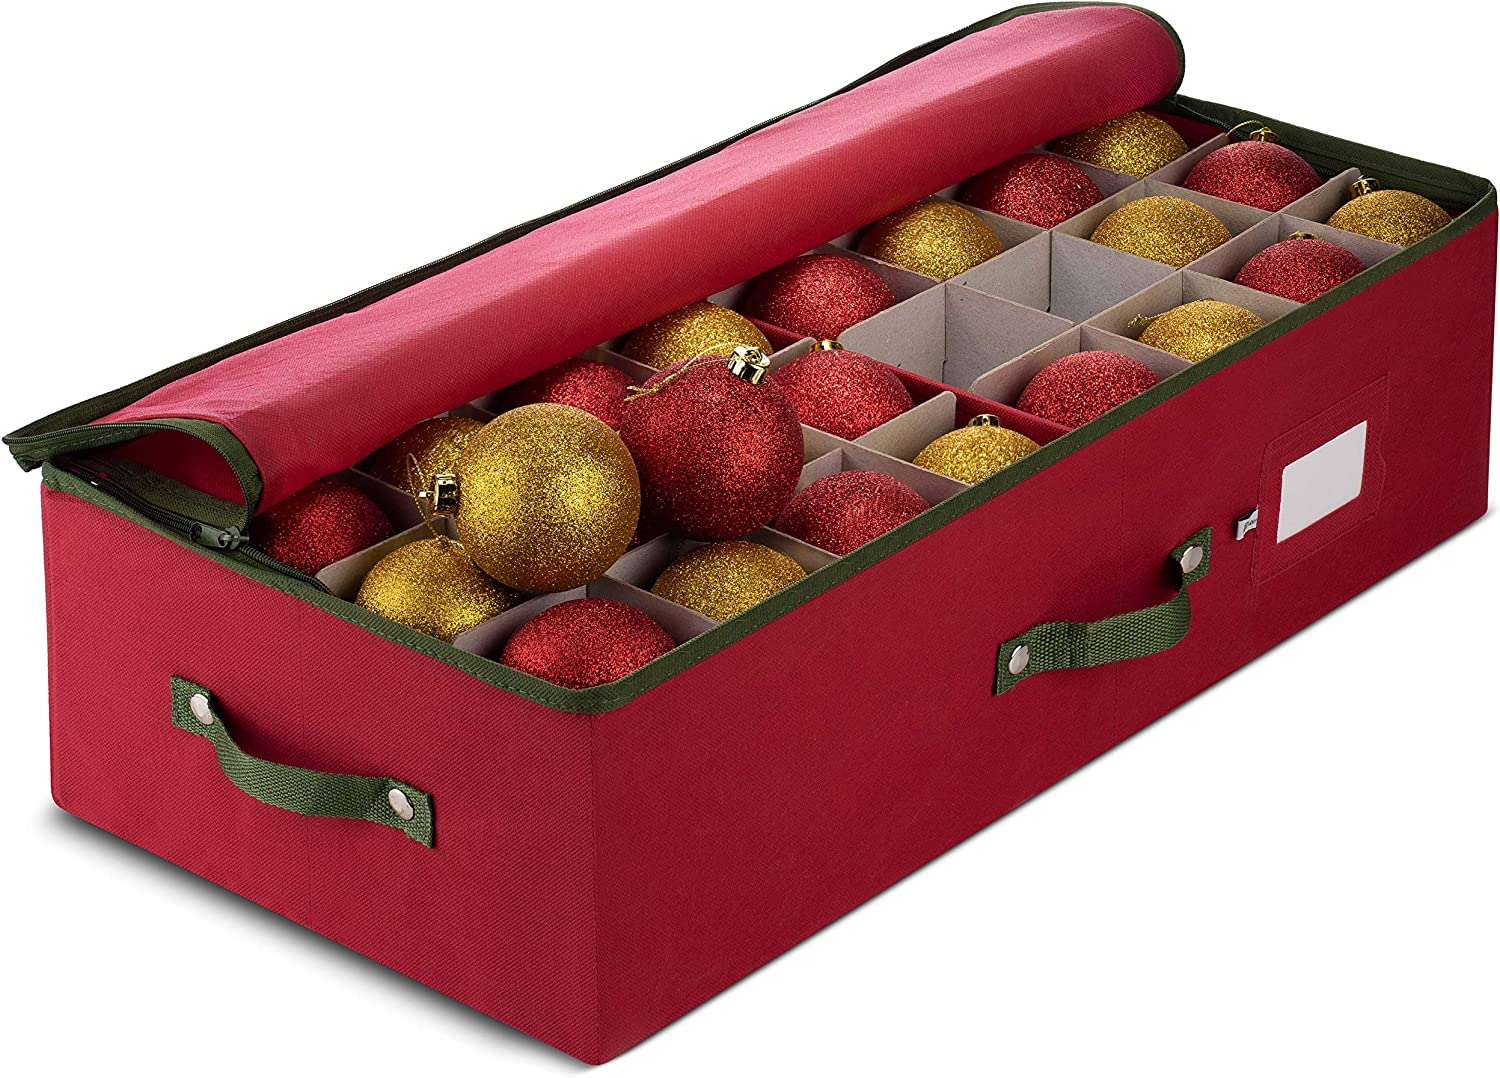 ZOBER Underbed Christmas Ornament Storage Box Zippered Closure - Stores up to 64 of The 3-inch Standard Christmas Ornaments, and Xmas Holiday Accessories Storage Container with Dividers & Two Handle